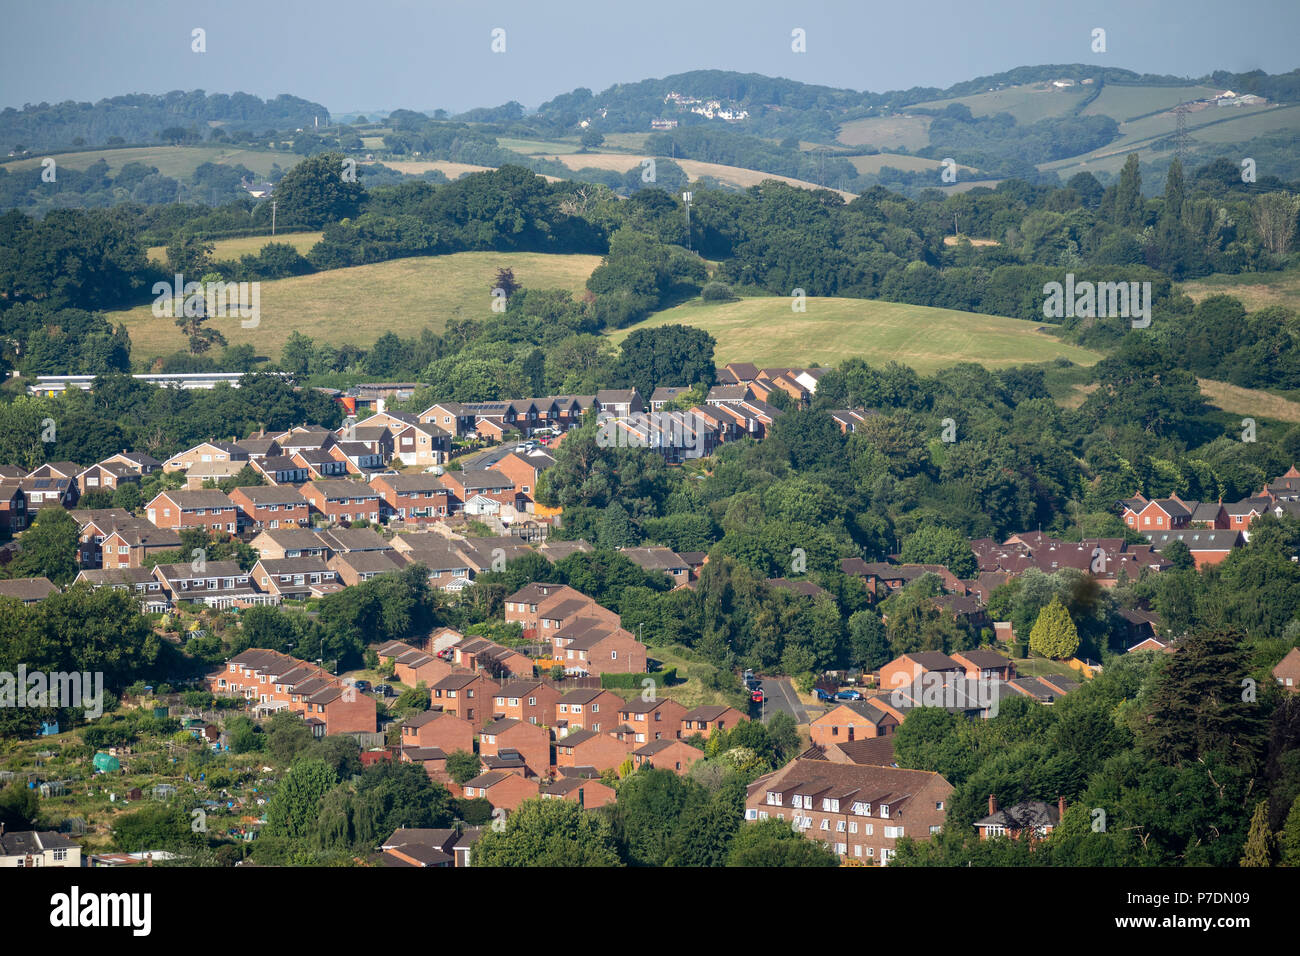 Exeter, Devon, UK. An overview of housing and countryside north east of Exeter city boundary. - Stock Image